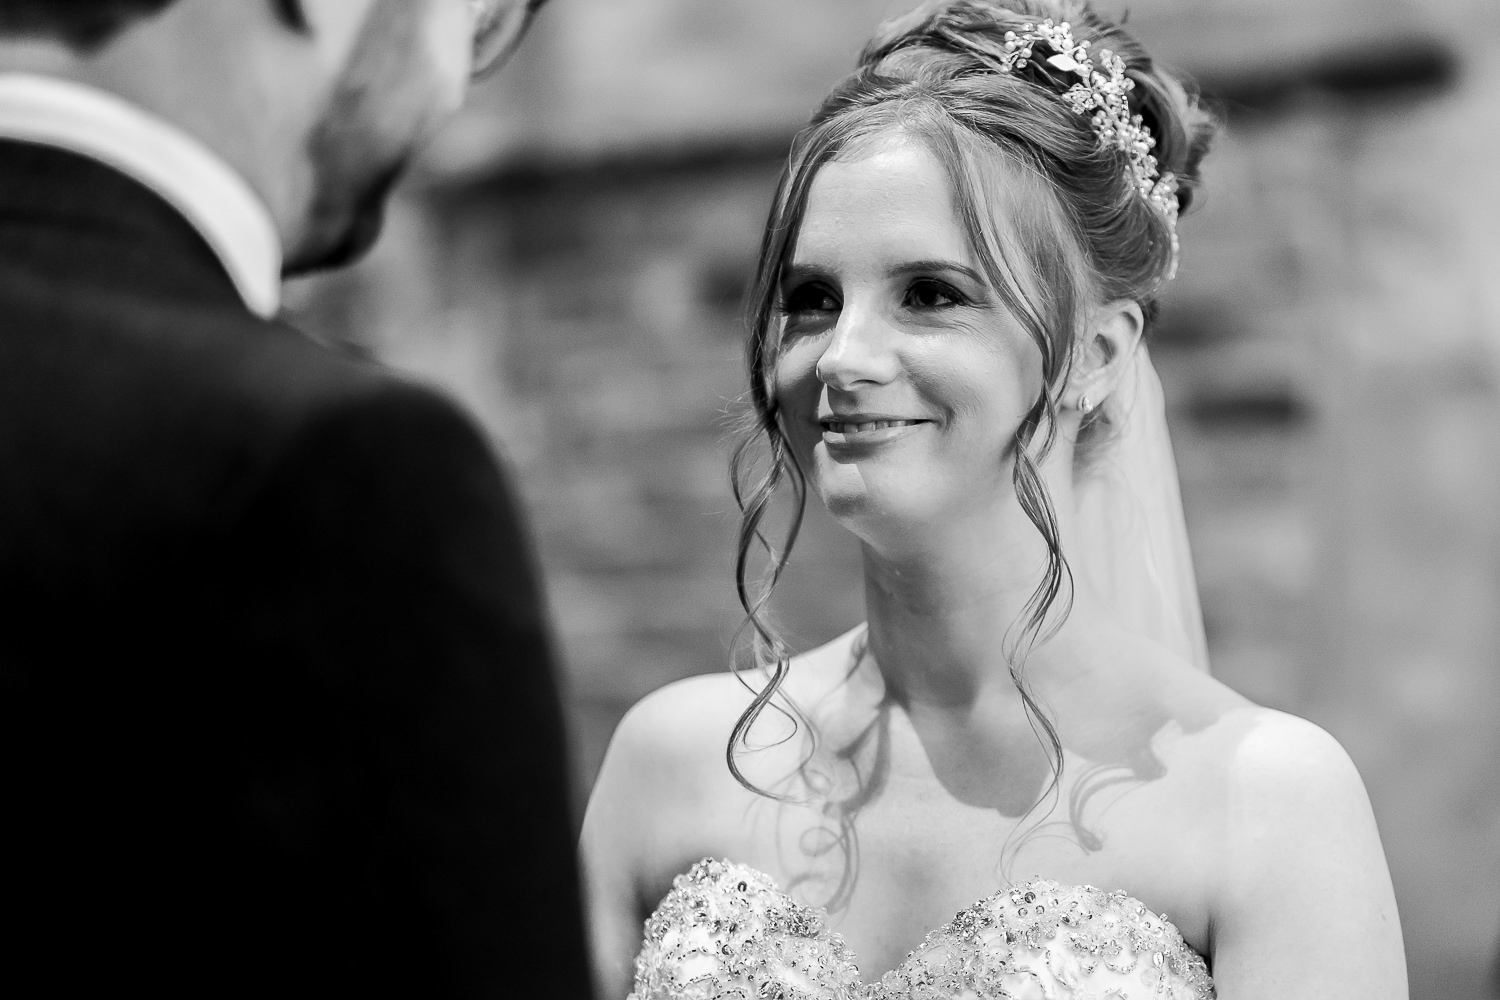 bride smiling at the groom during vows